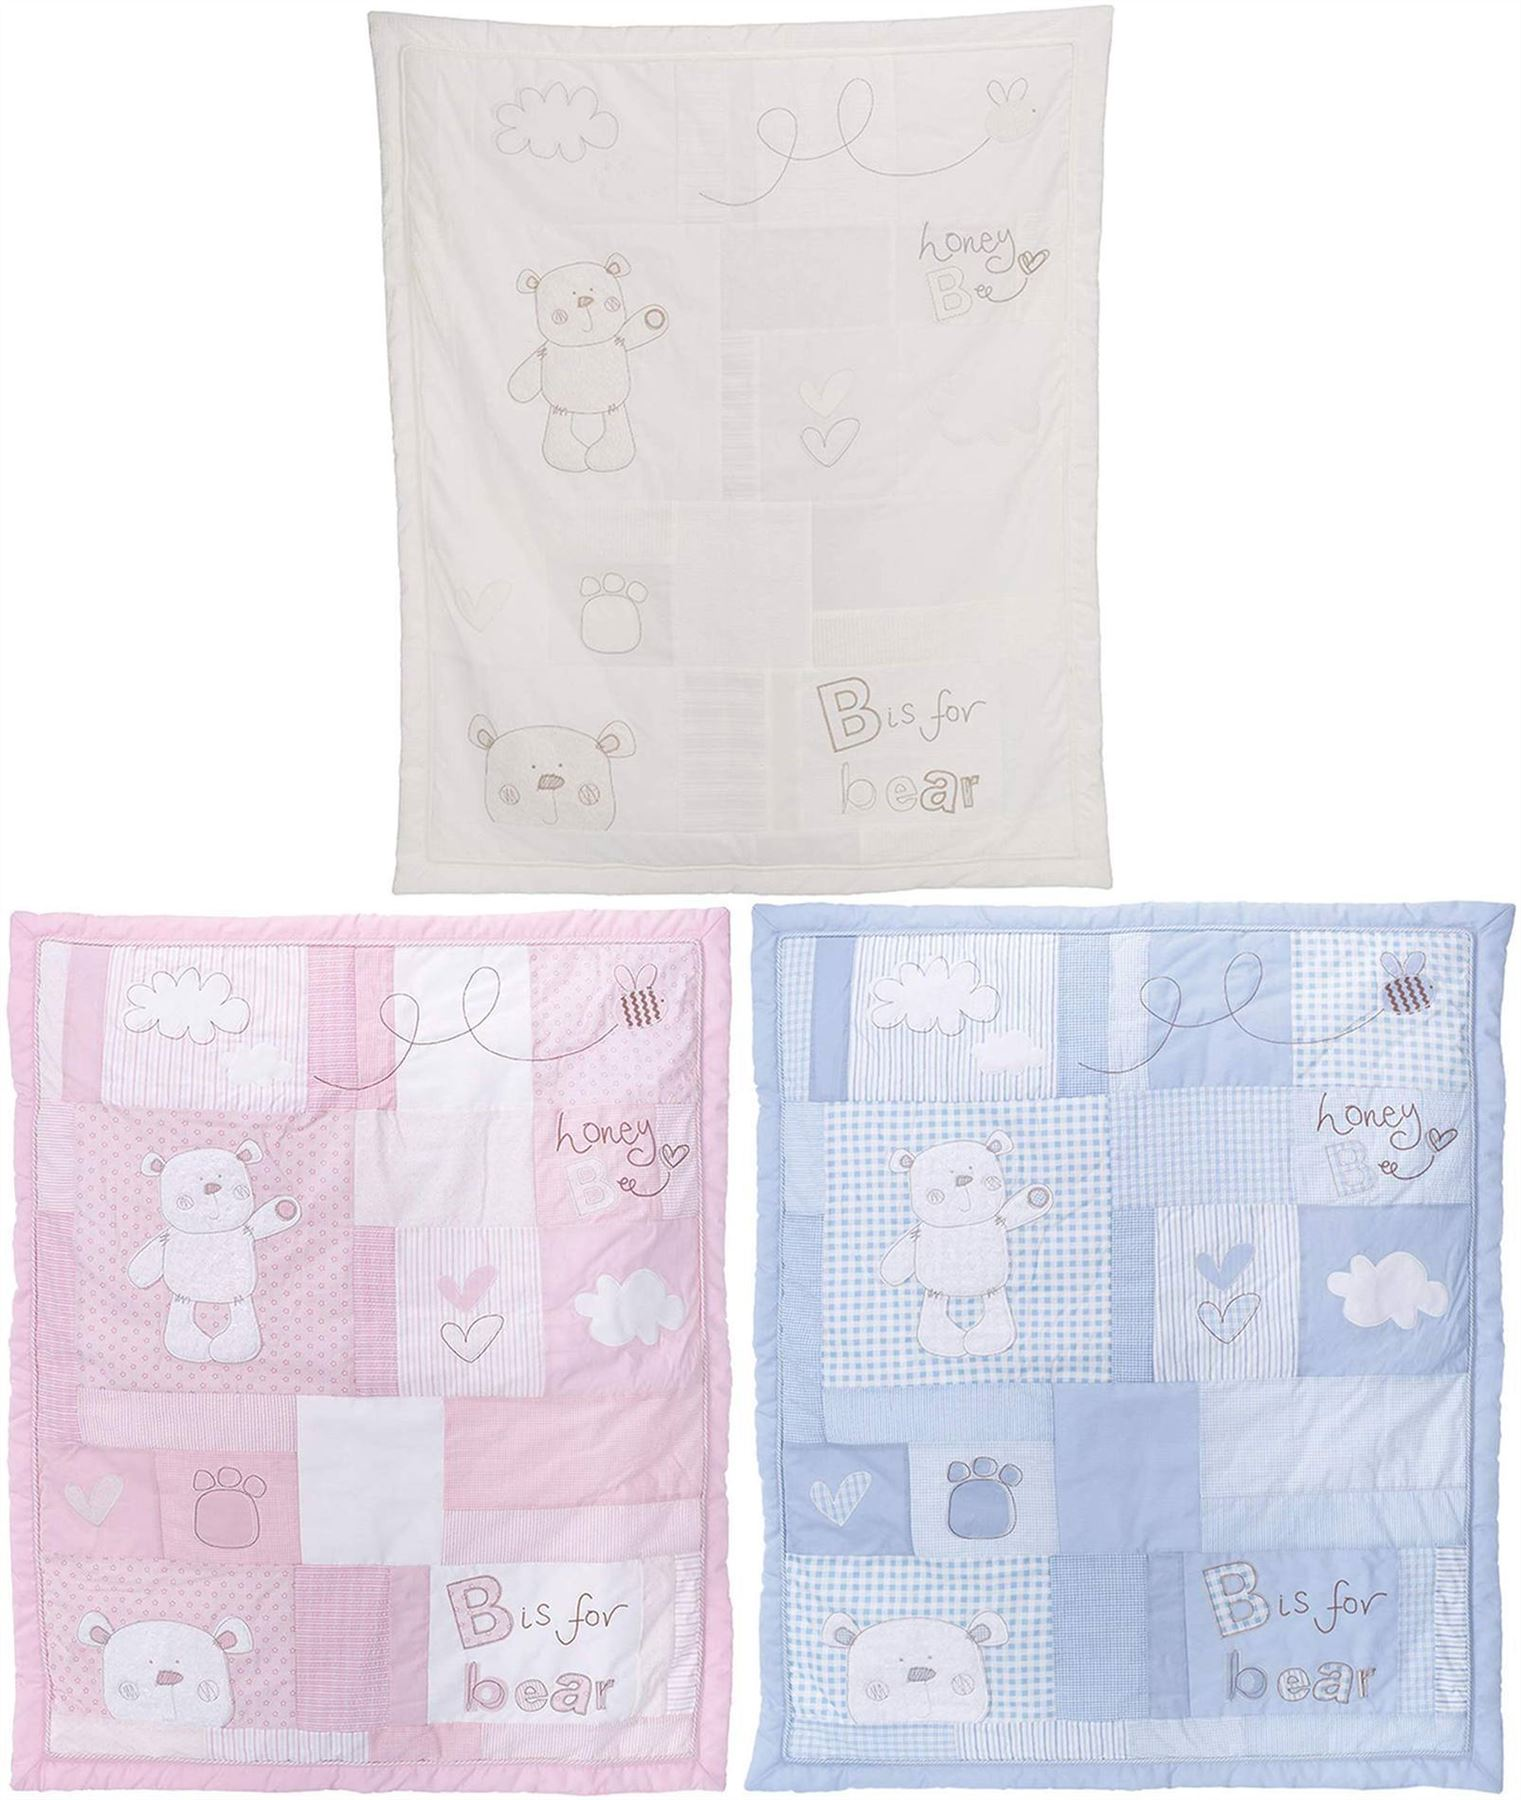 Patchwork Set Baby Details About Obaby B Is For Bear Quilt Bumper Cot Cot Bed Set Baby Toddler Nursery Bn